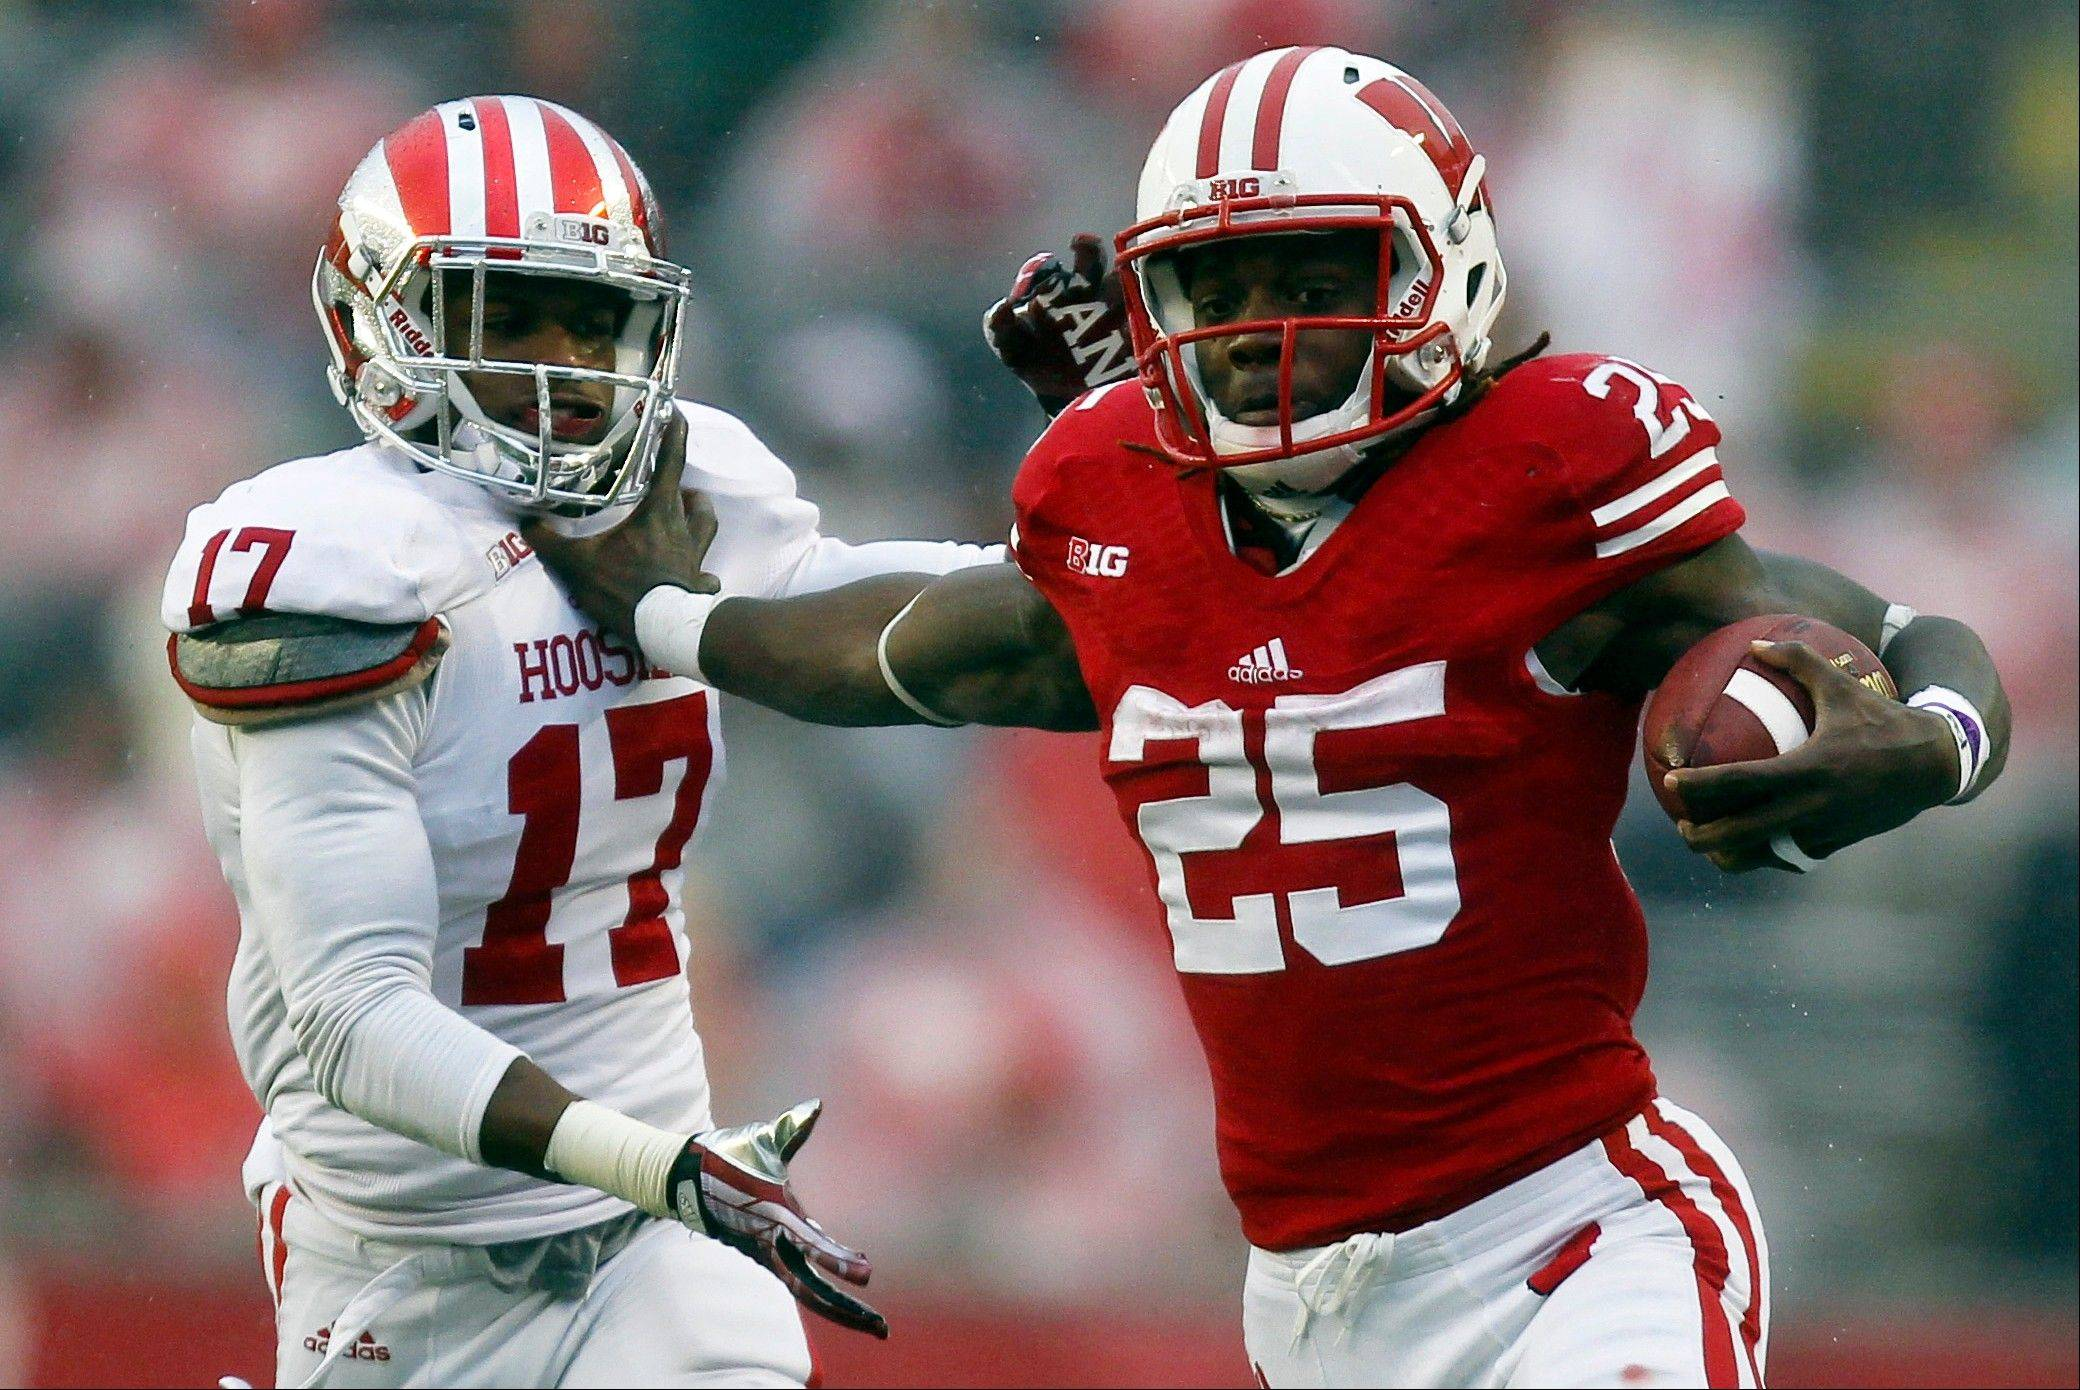 Wisconsin�s Melvin Gordon, right, pushes Indiana�s Michael Hunter away during the first half of last Saturday�s game in Madison.